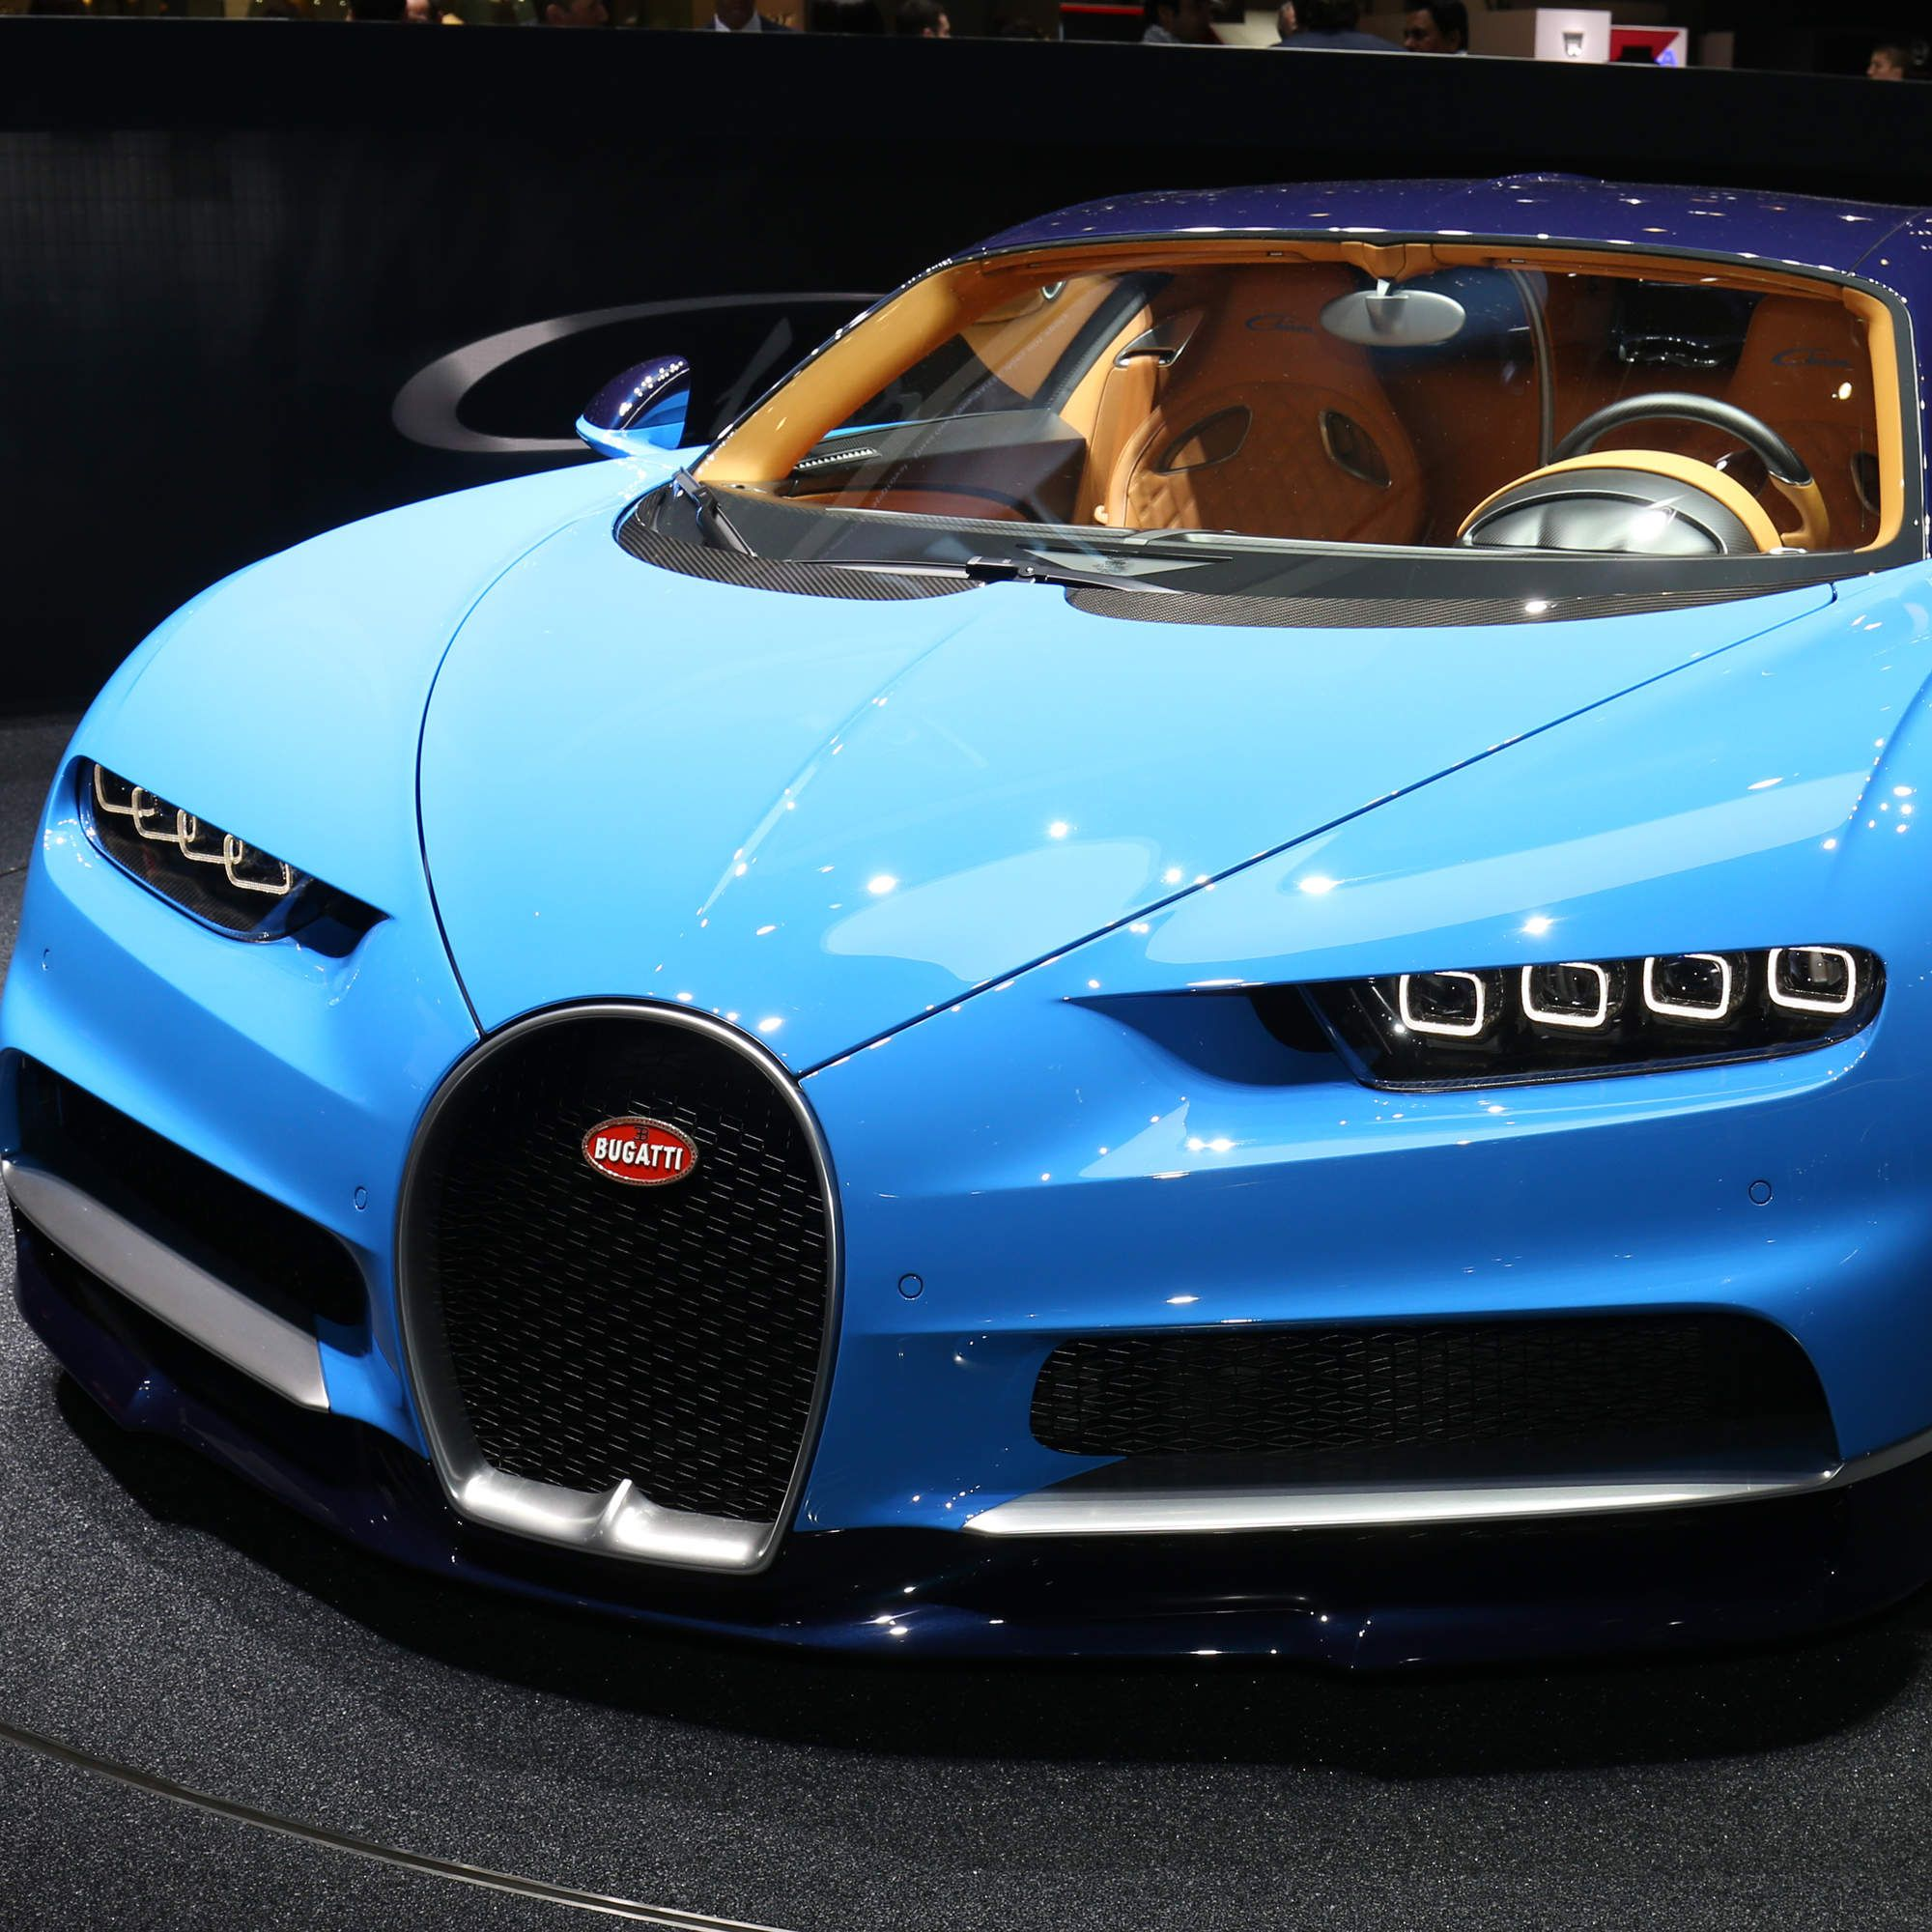 The Most Badass Cars At The 2016 Geneva Motor Show (With